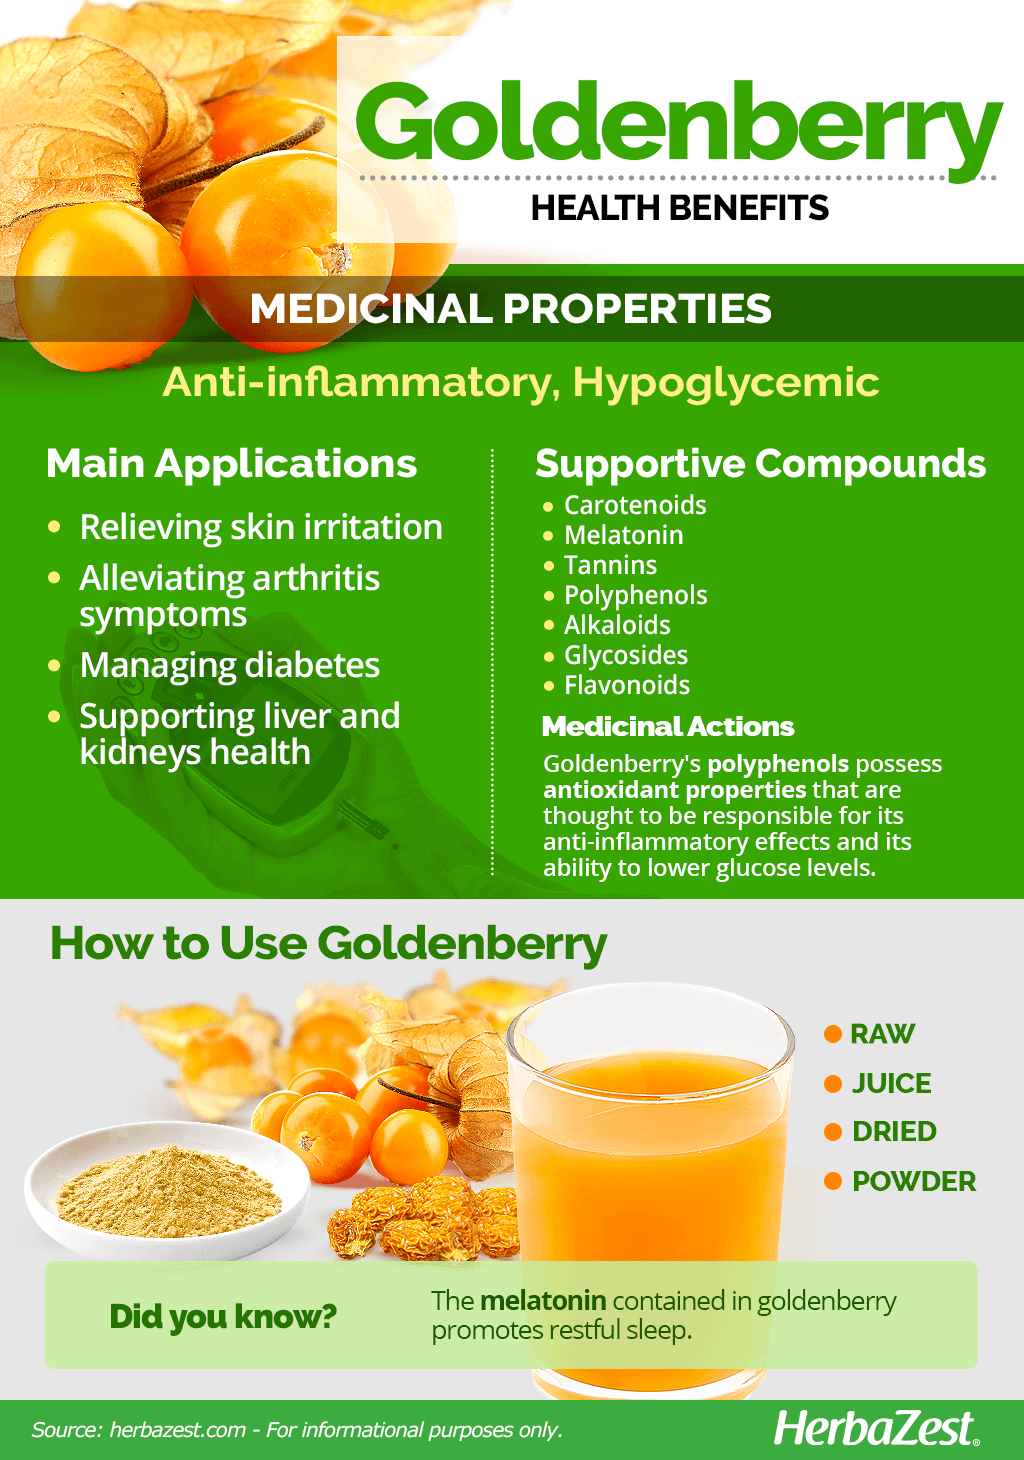 All About Goldenberry